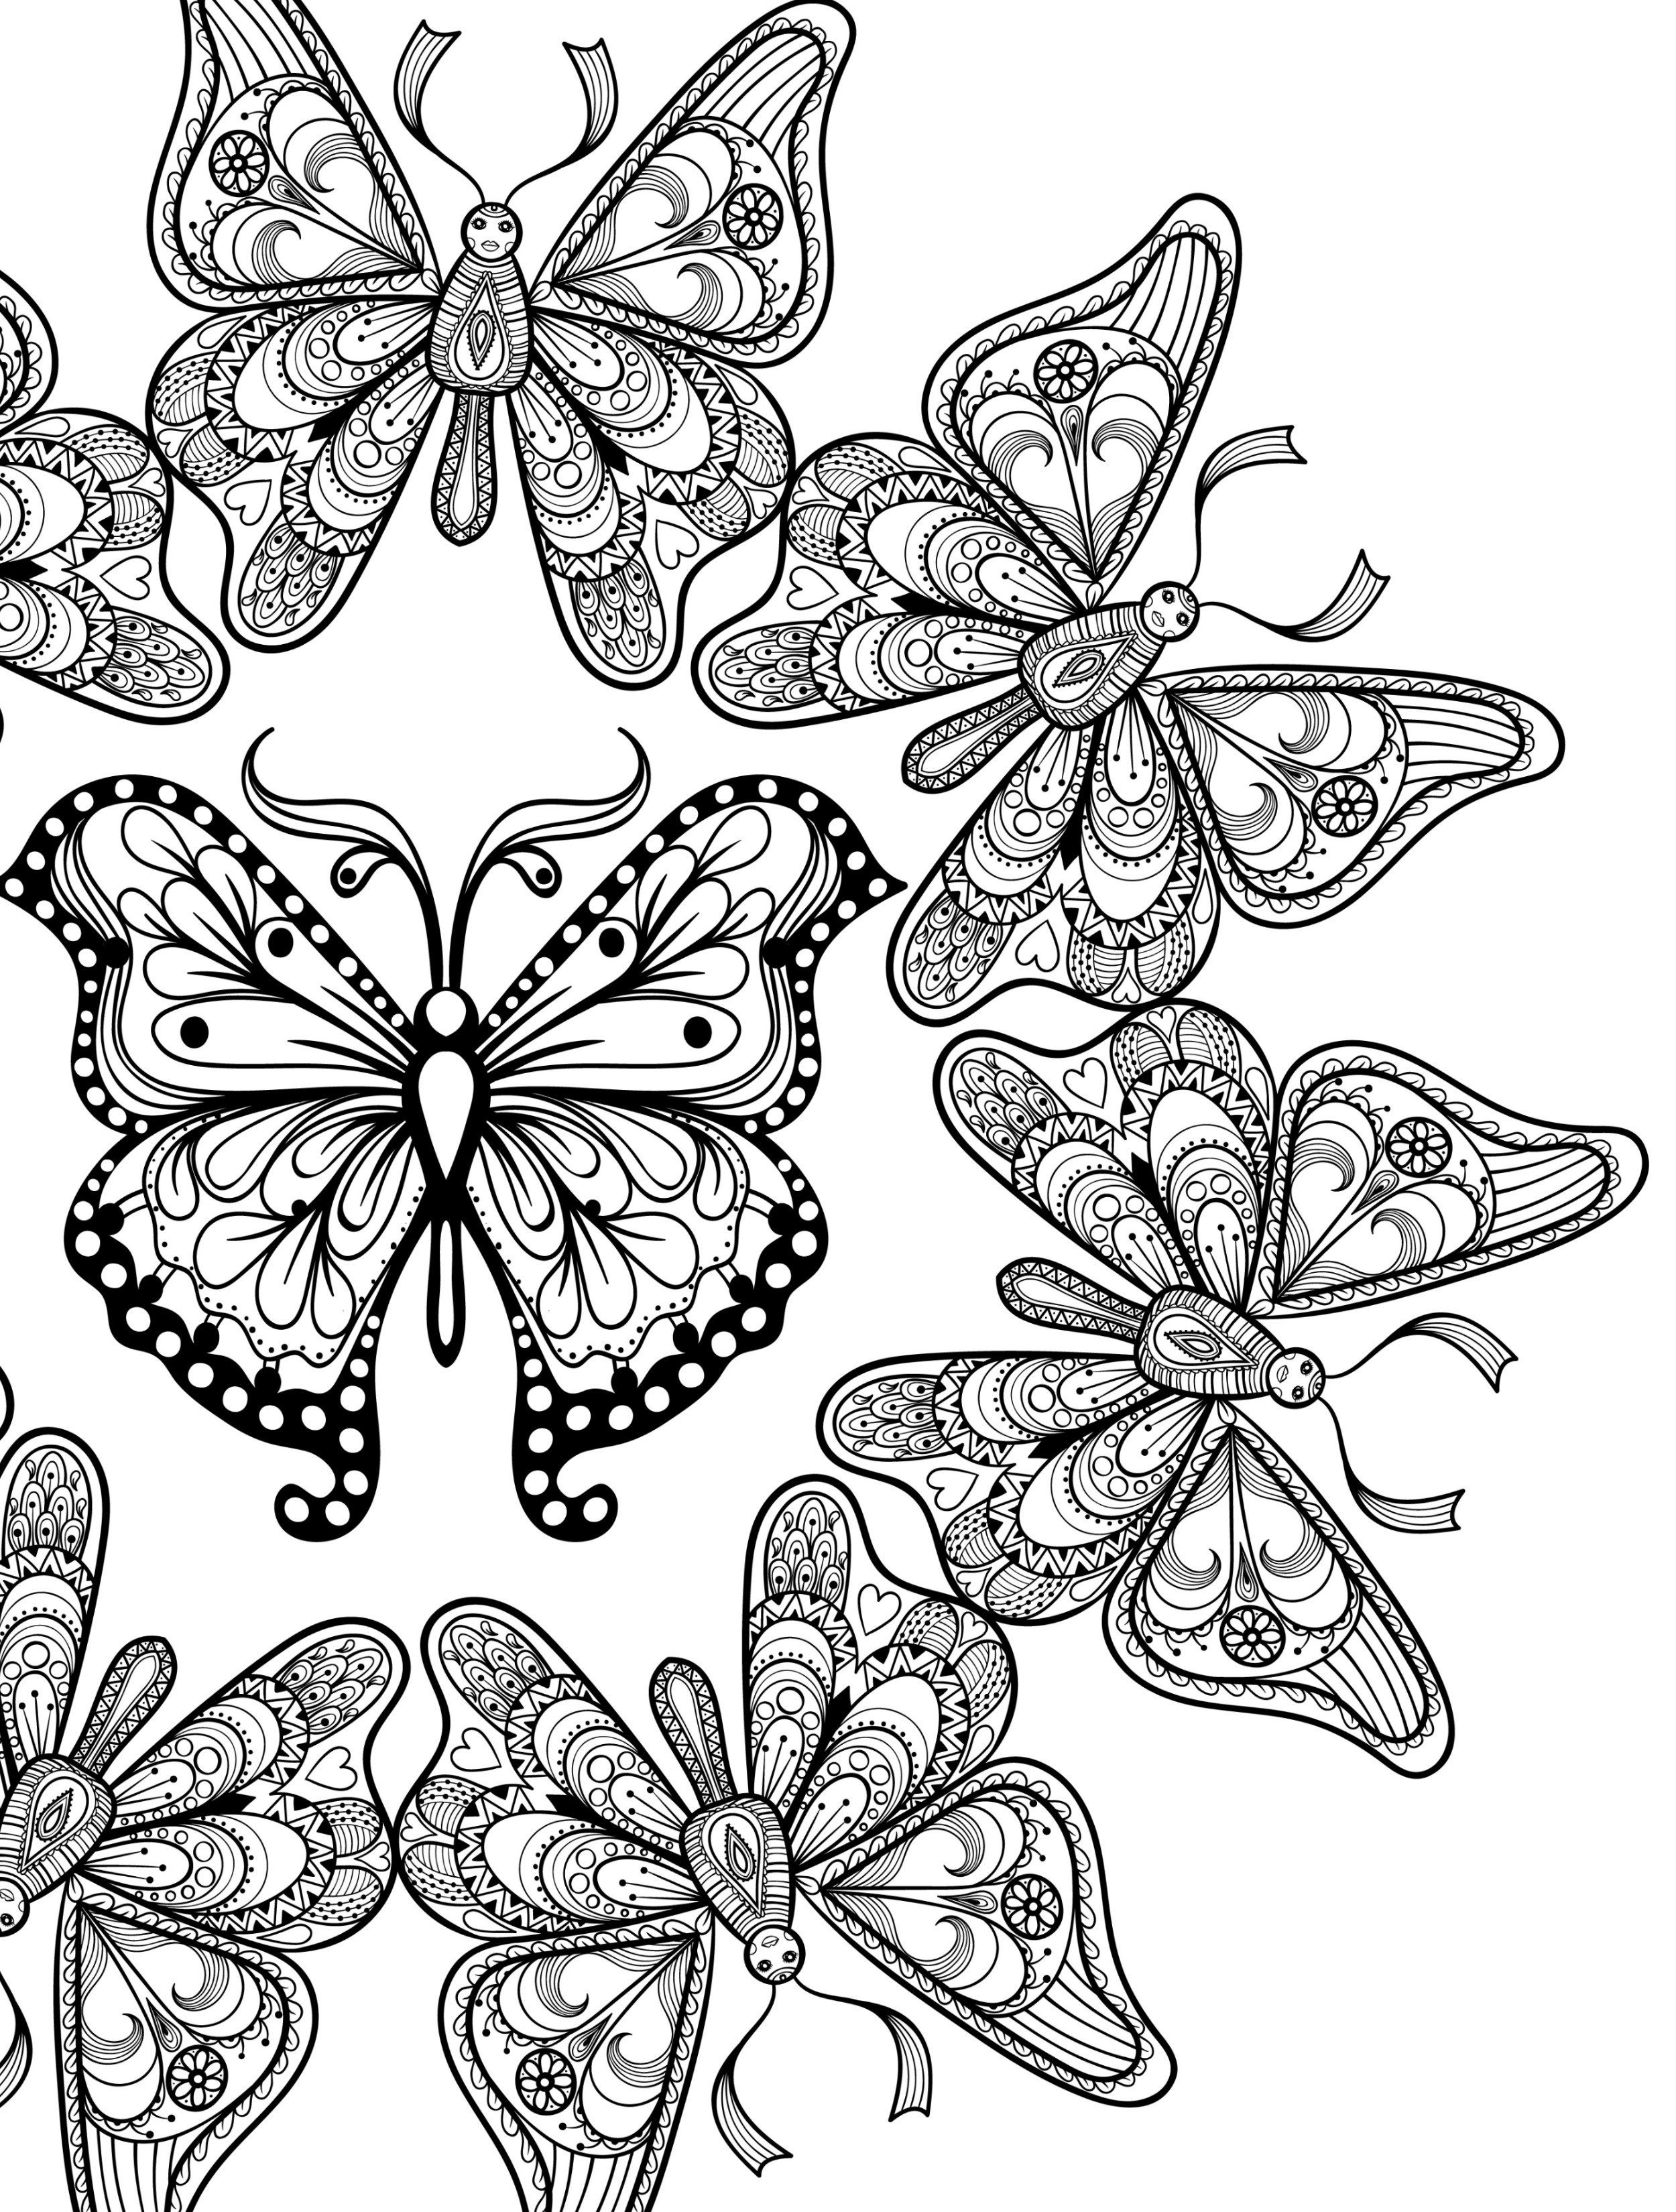 23 Free Printable Insect & Animal Adult Coloring Pages | Butterflies ...